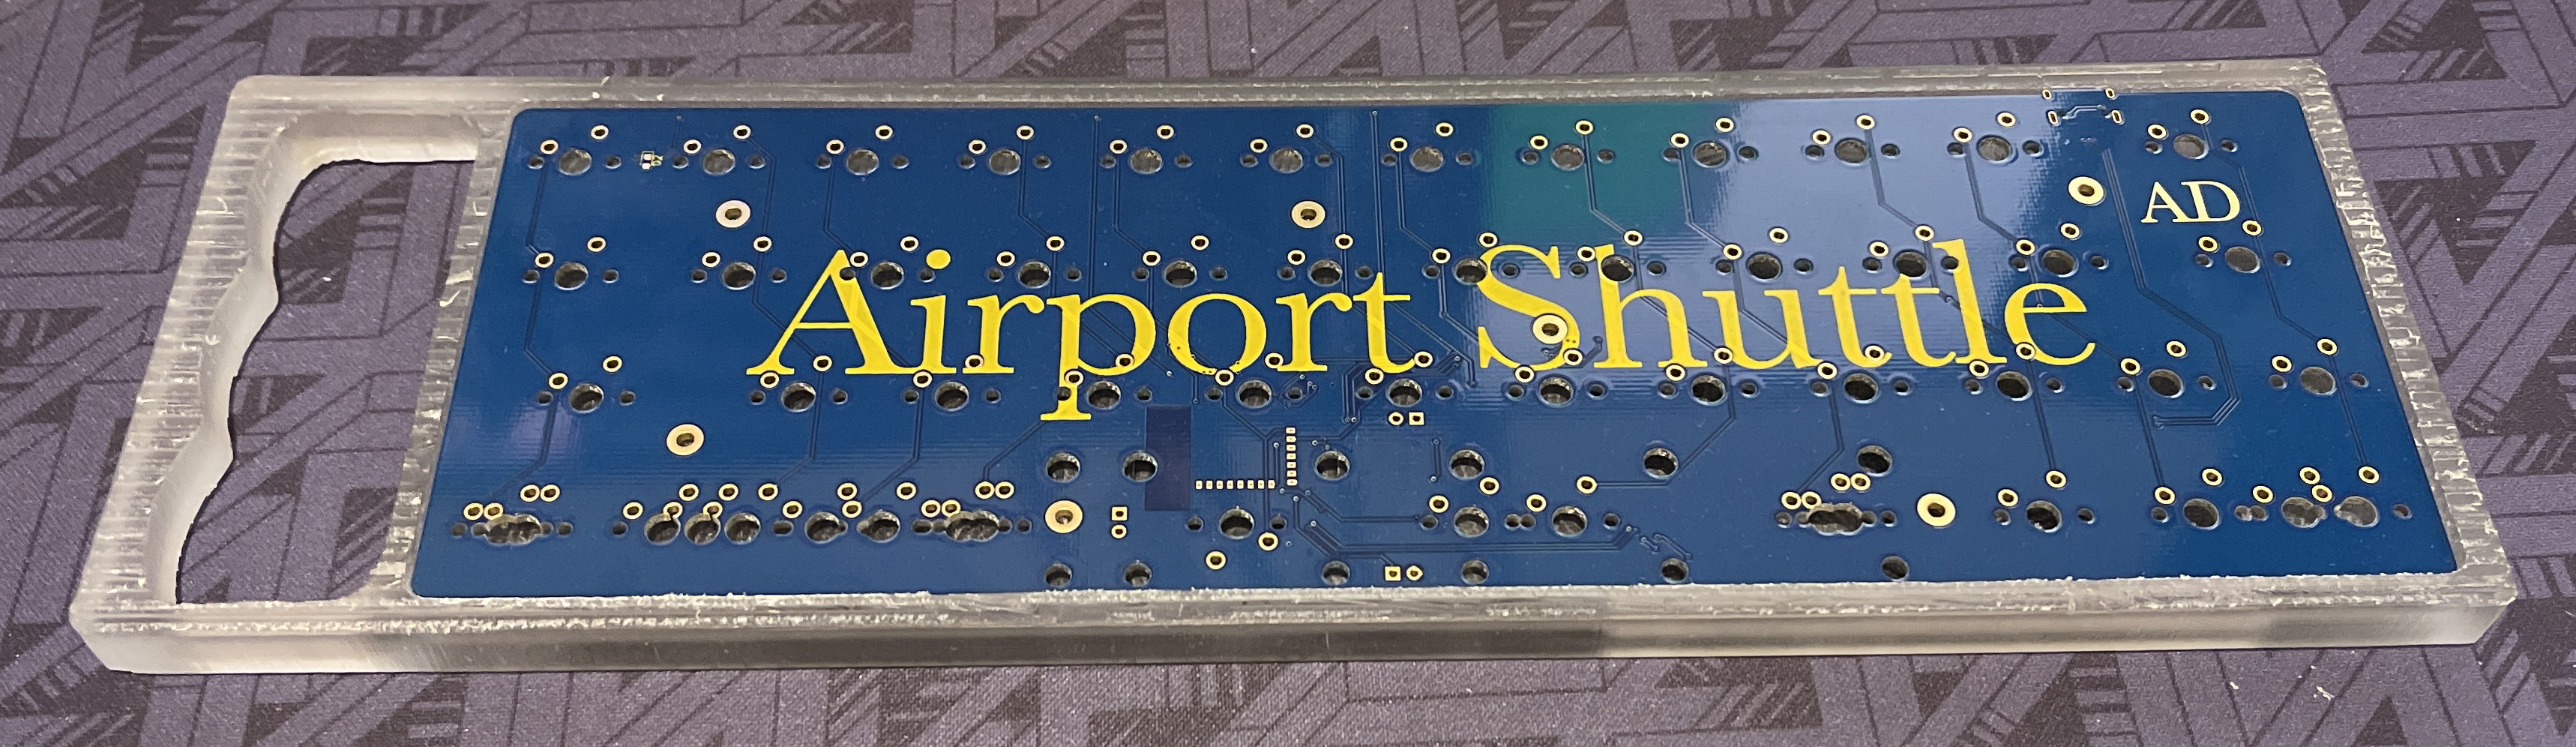 Top view of a polycarbonate Rackmount prototype with Airport Shuttle PCB